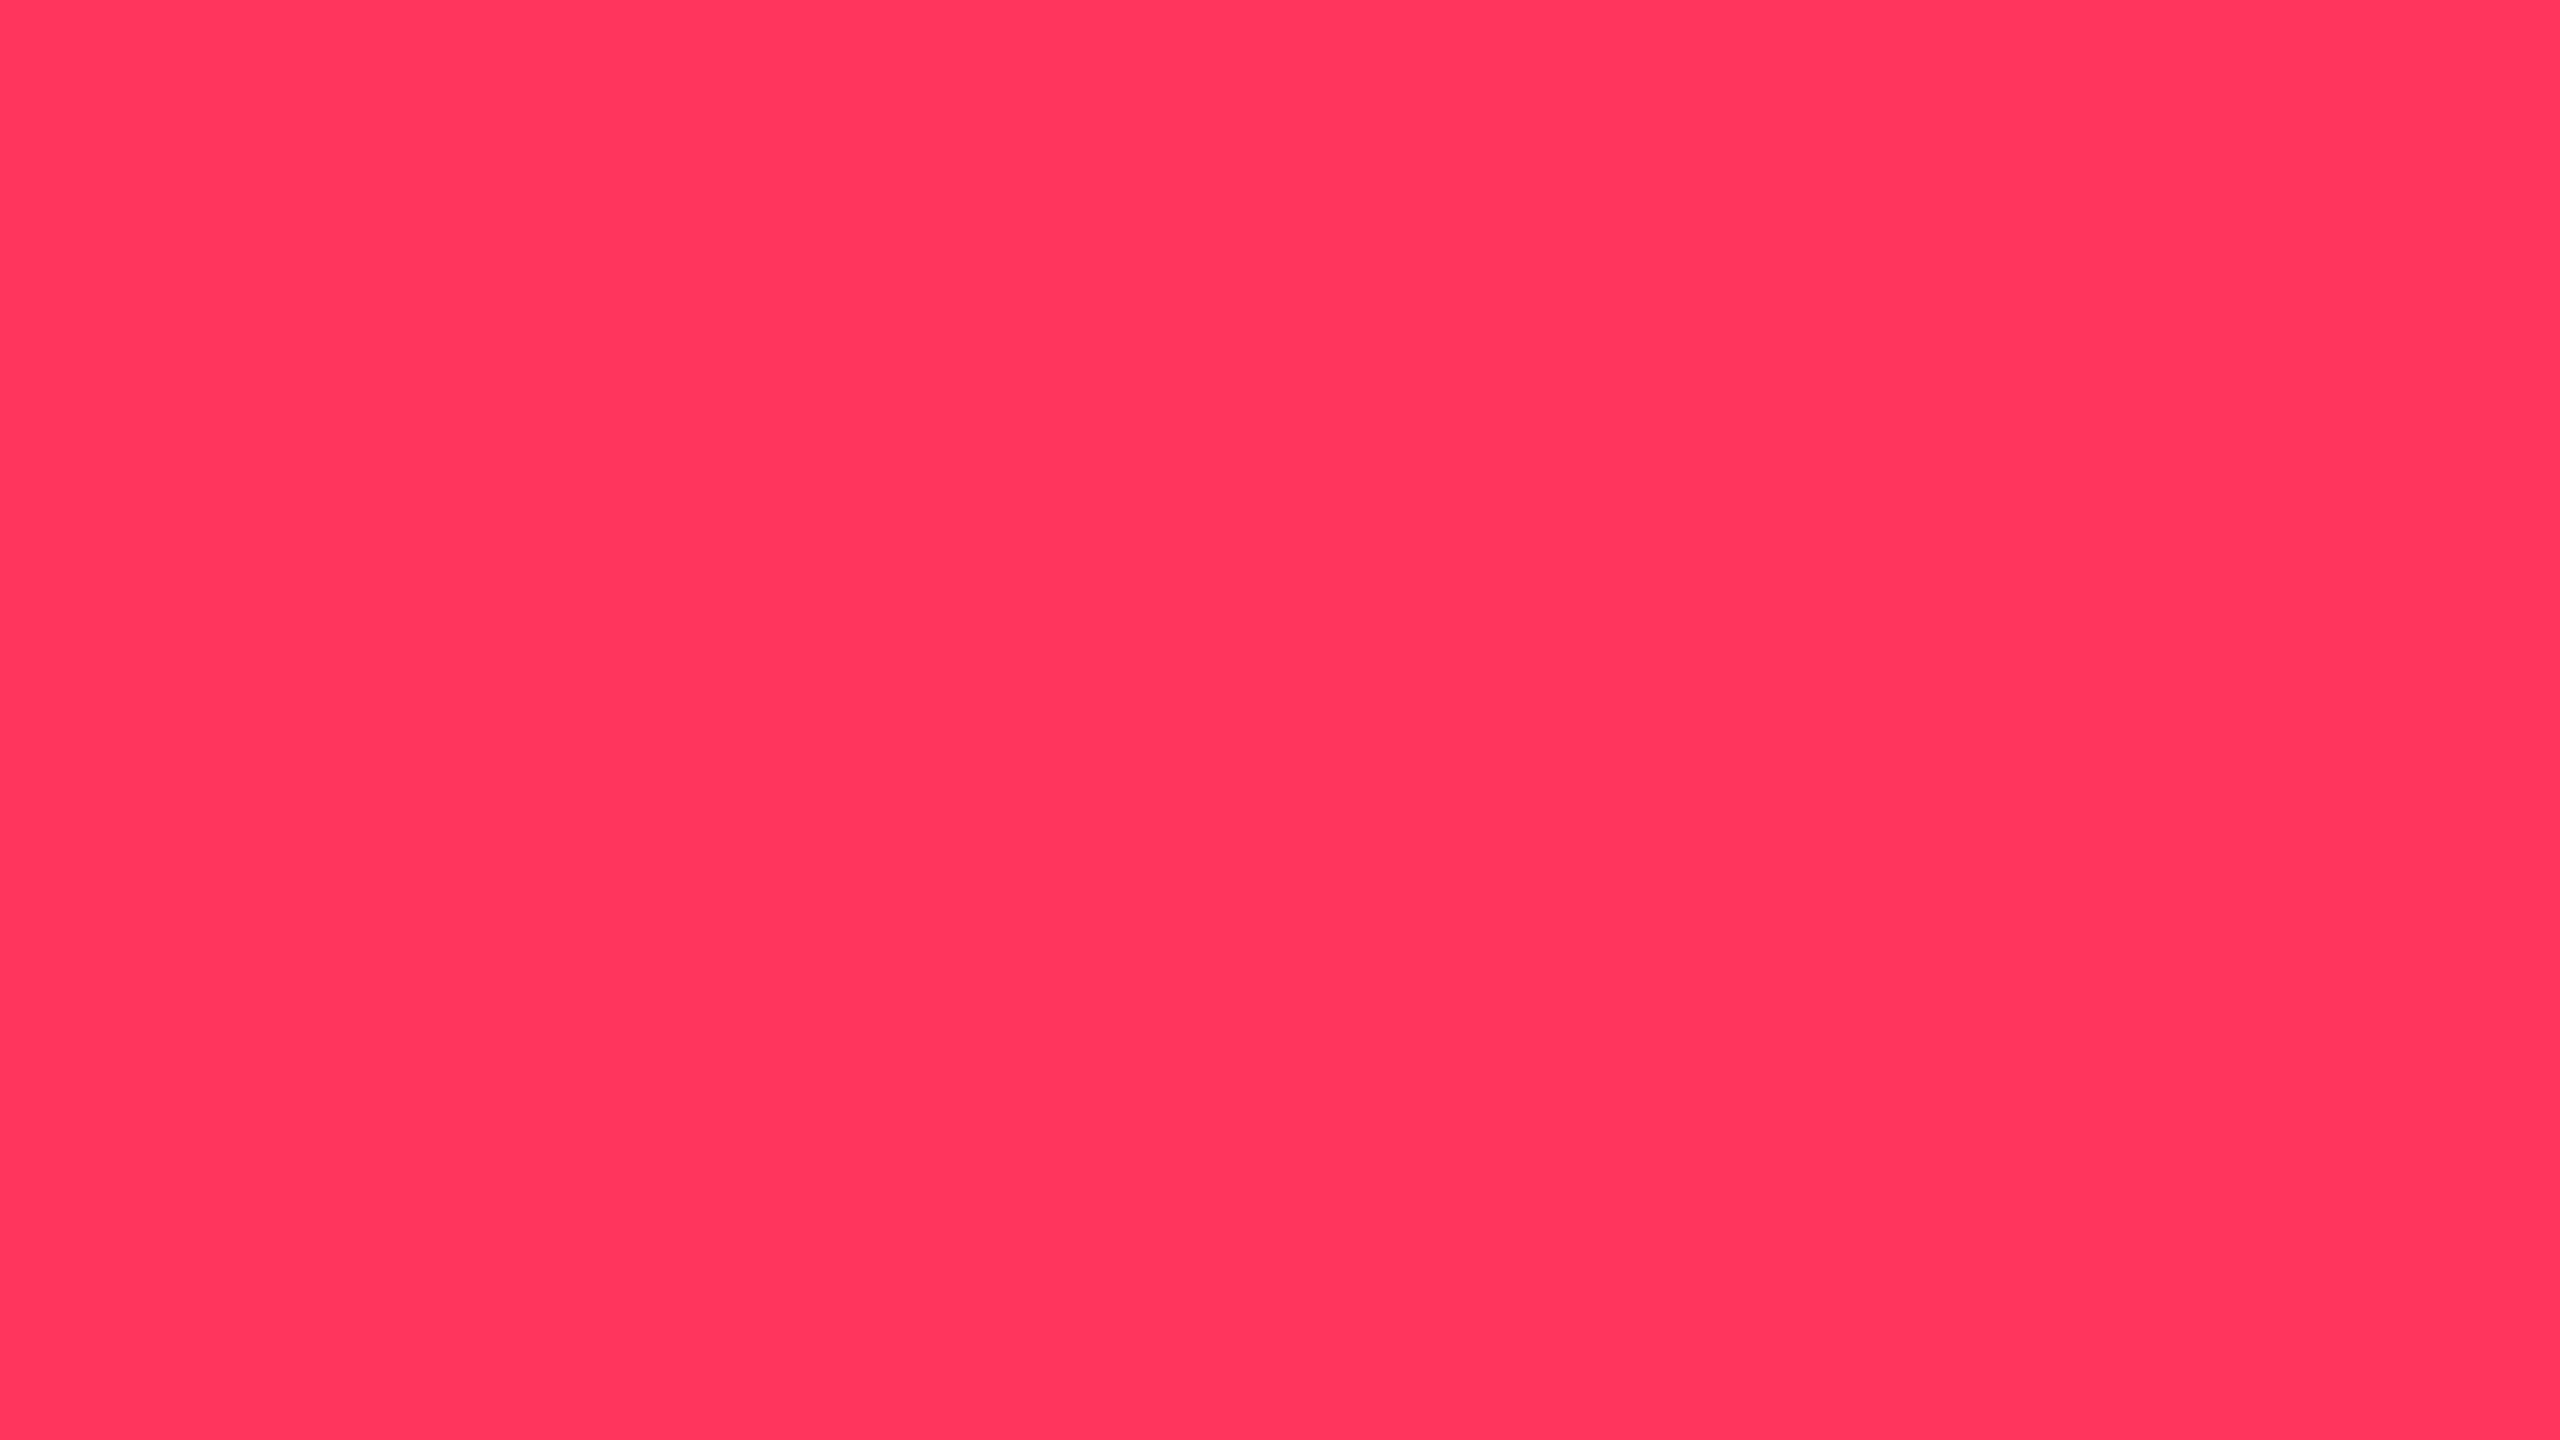 2560x1440 Radical Red Solid Color Background